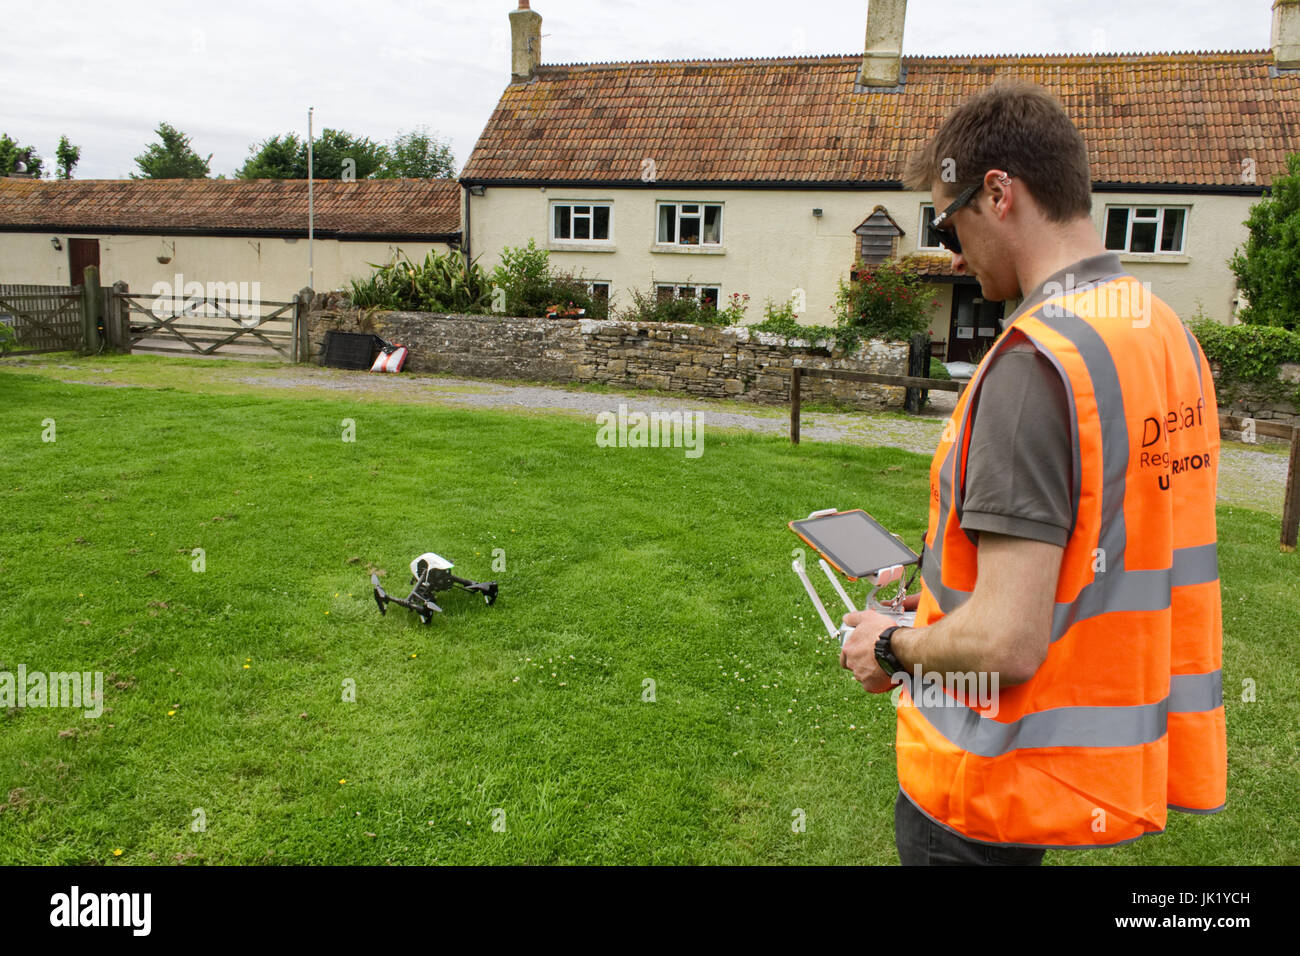 Licensed Drone Operator flying DJI Inspire 1 at a property in the UK Stock Photo